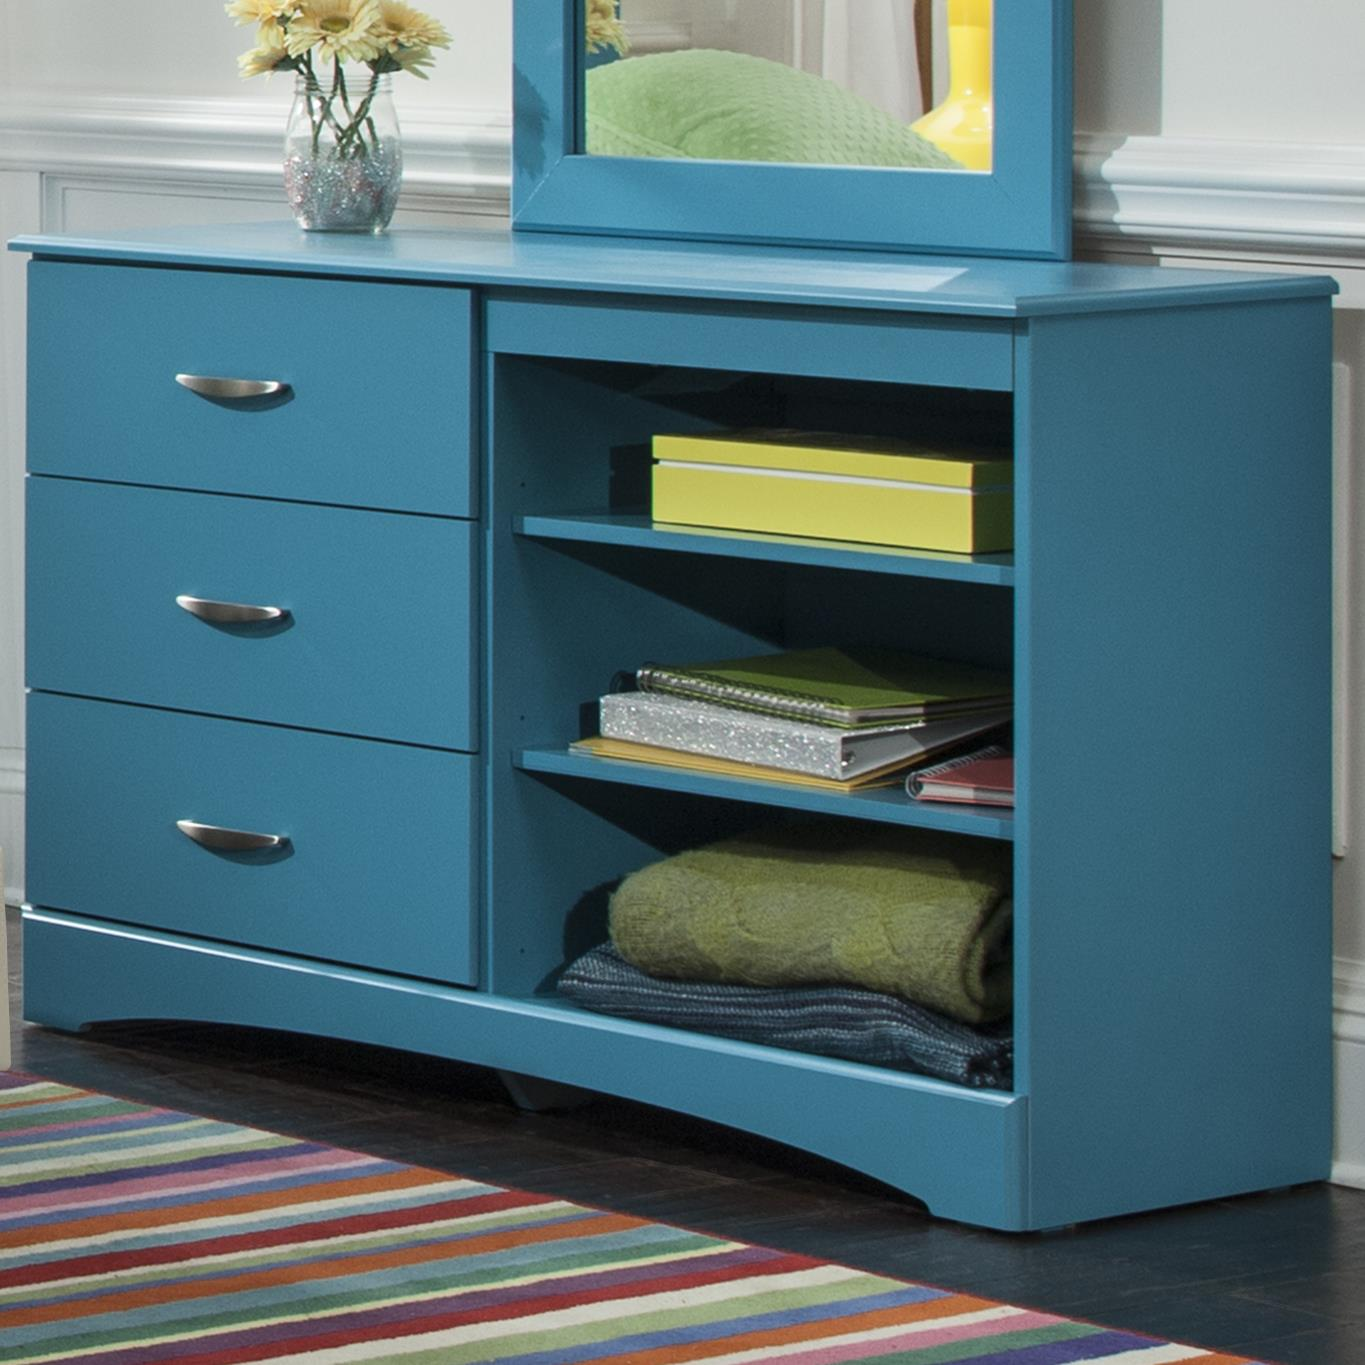 Kith Furniture 173 Turquoise Dresser - Item Number: 173-12